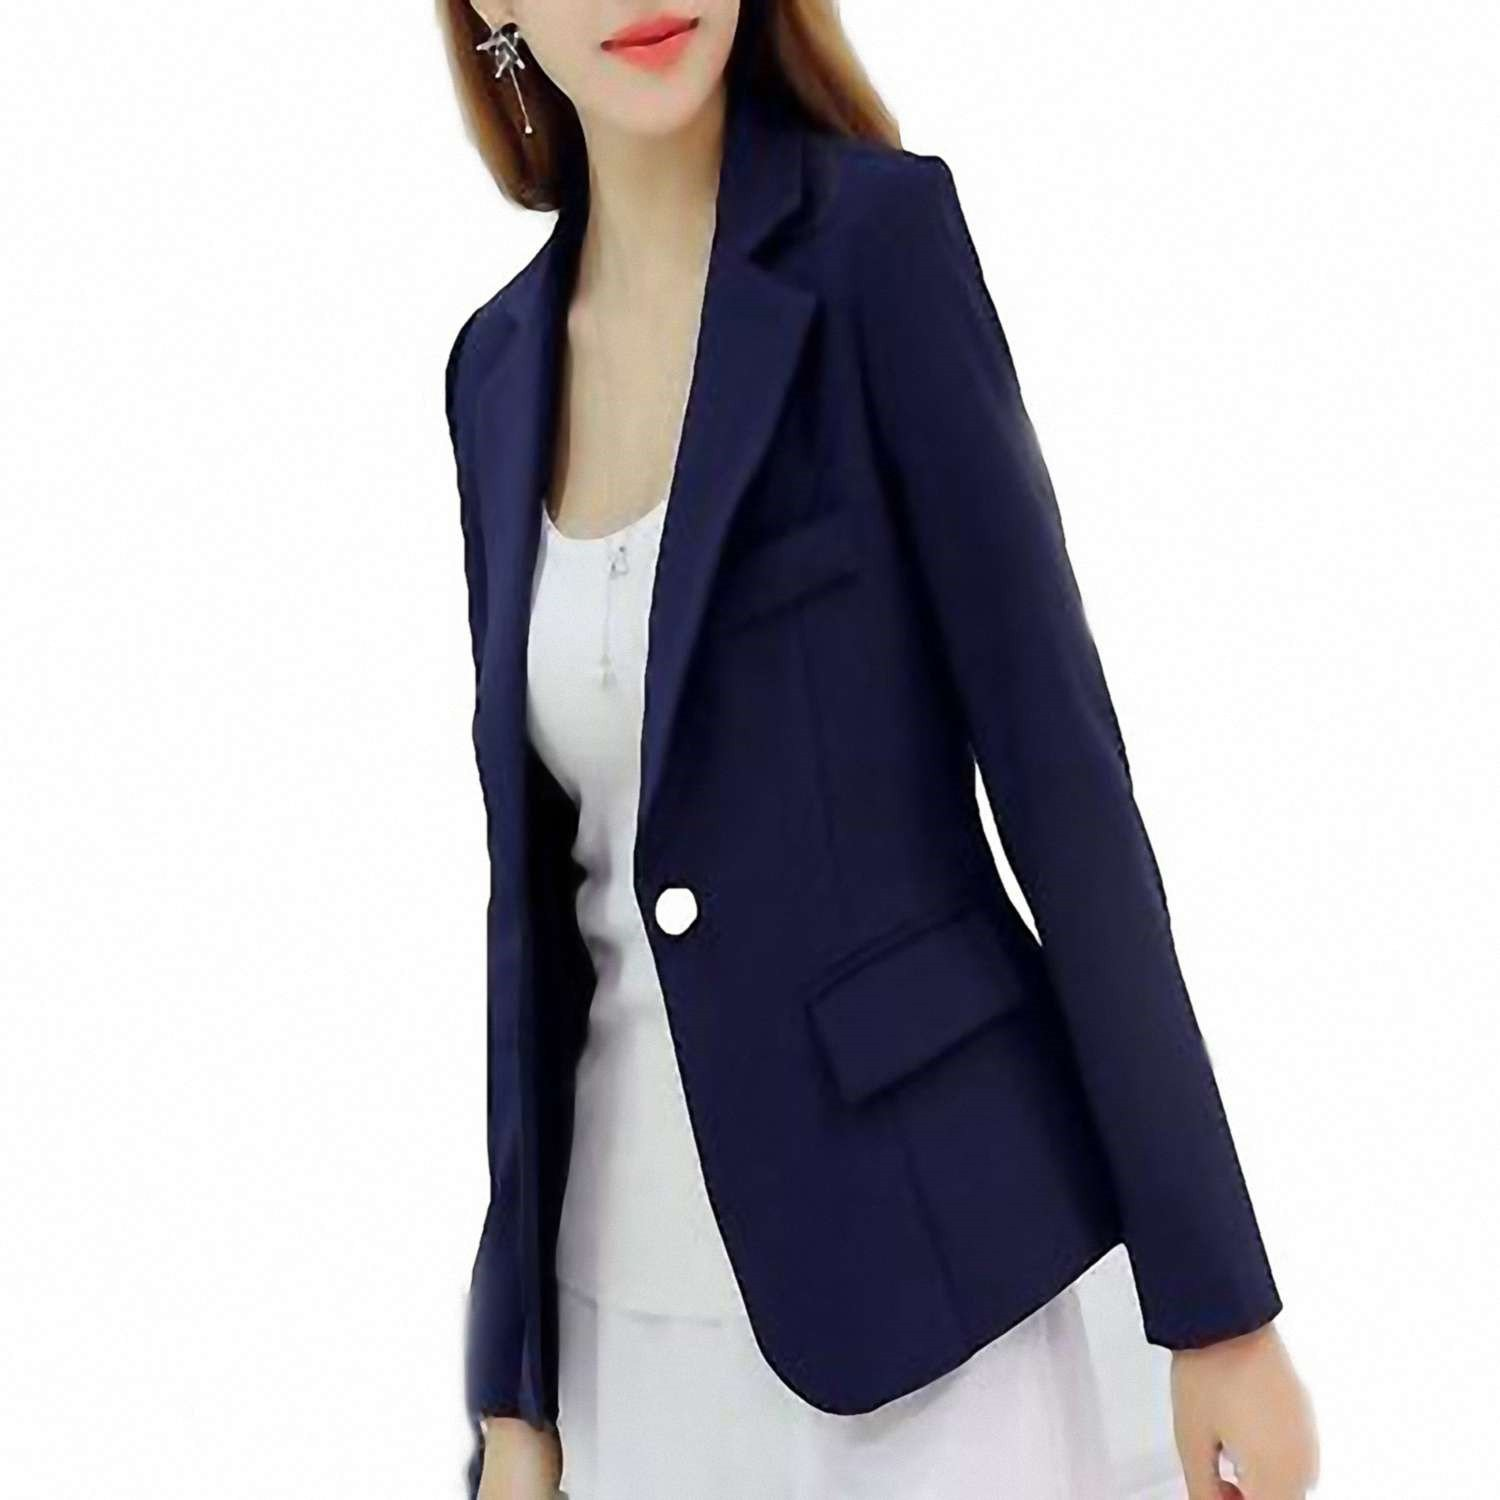 new concept c3aa0 dbe75 Get Quotations · Jongood Stylish Women Blazers and Jackets Small Women Suit  Korean Version (Gray Blue